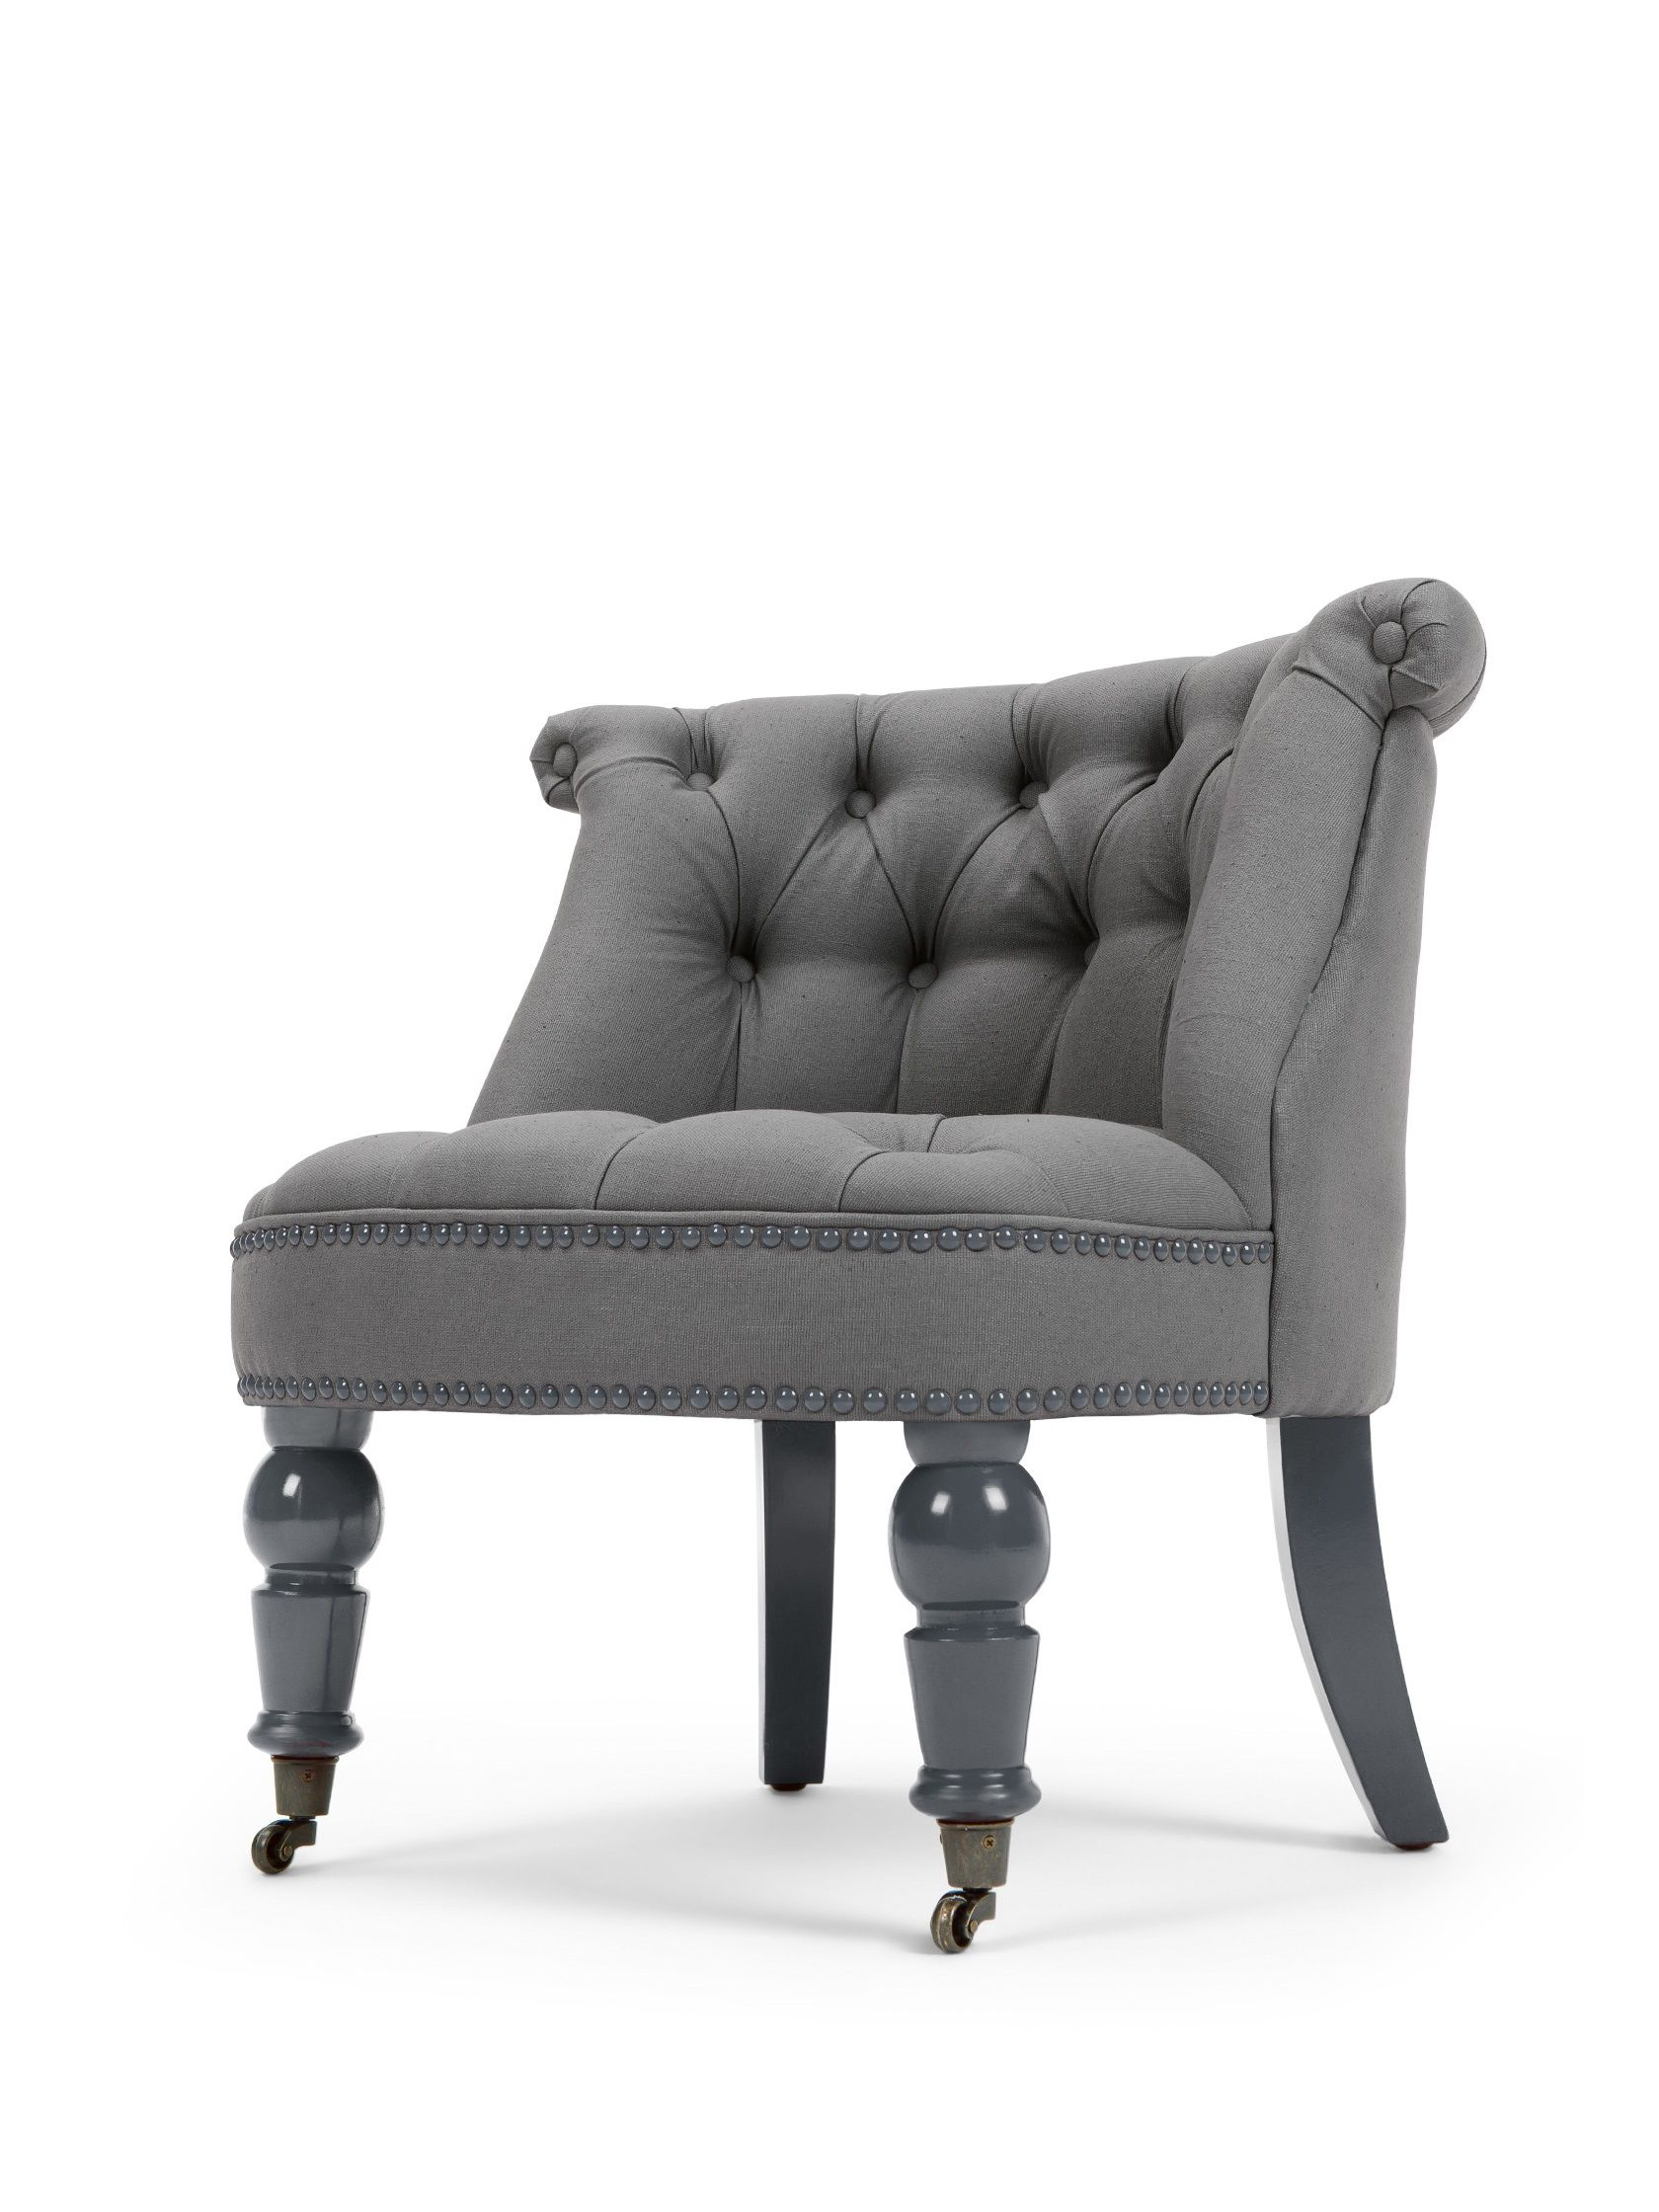 the bouji chair in graphite grey and slate boudoir chic 179 rh pinterest com